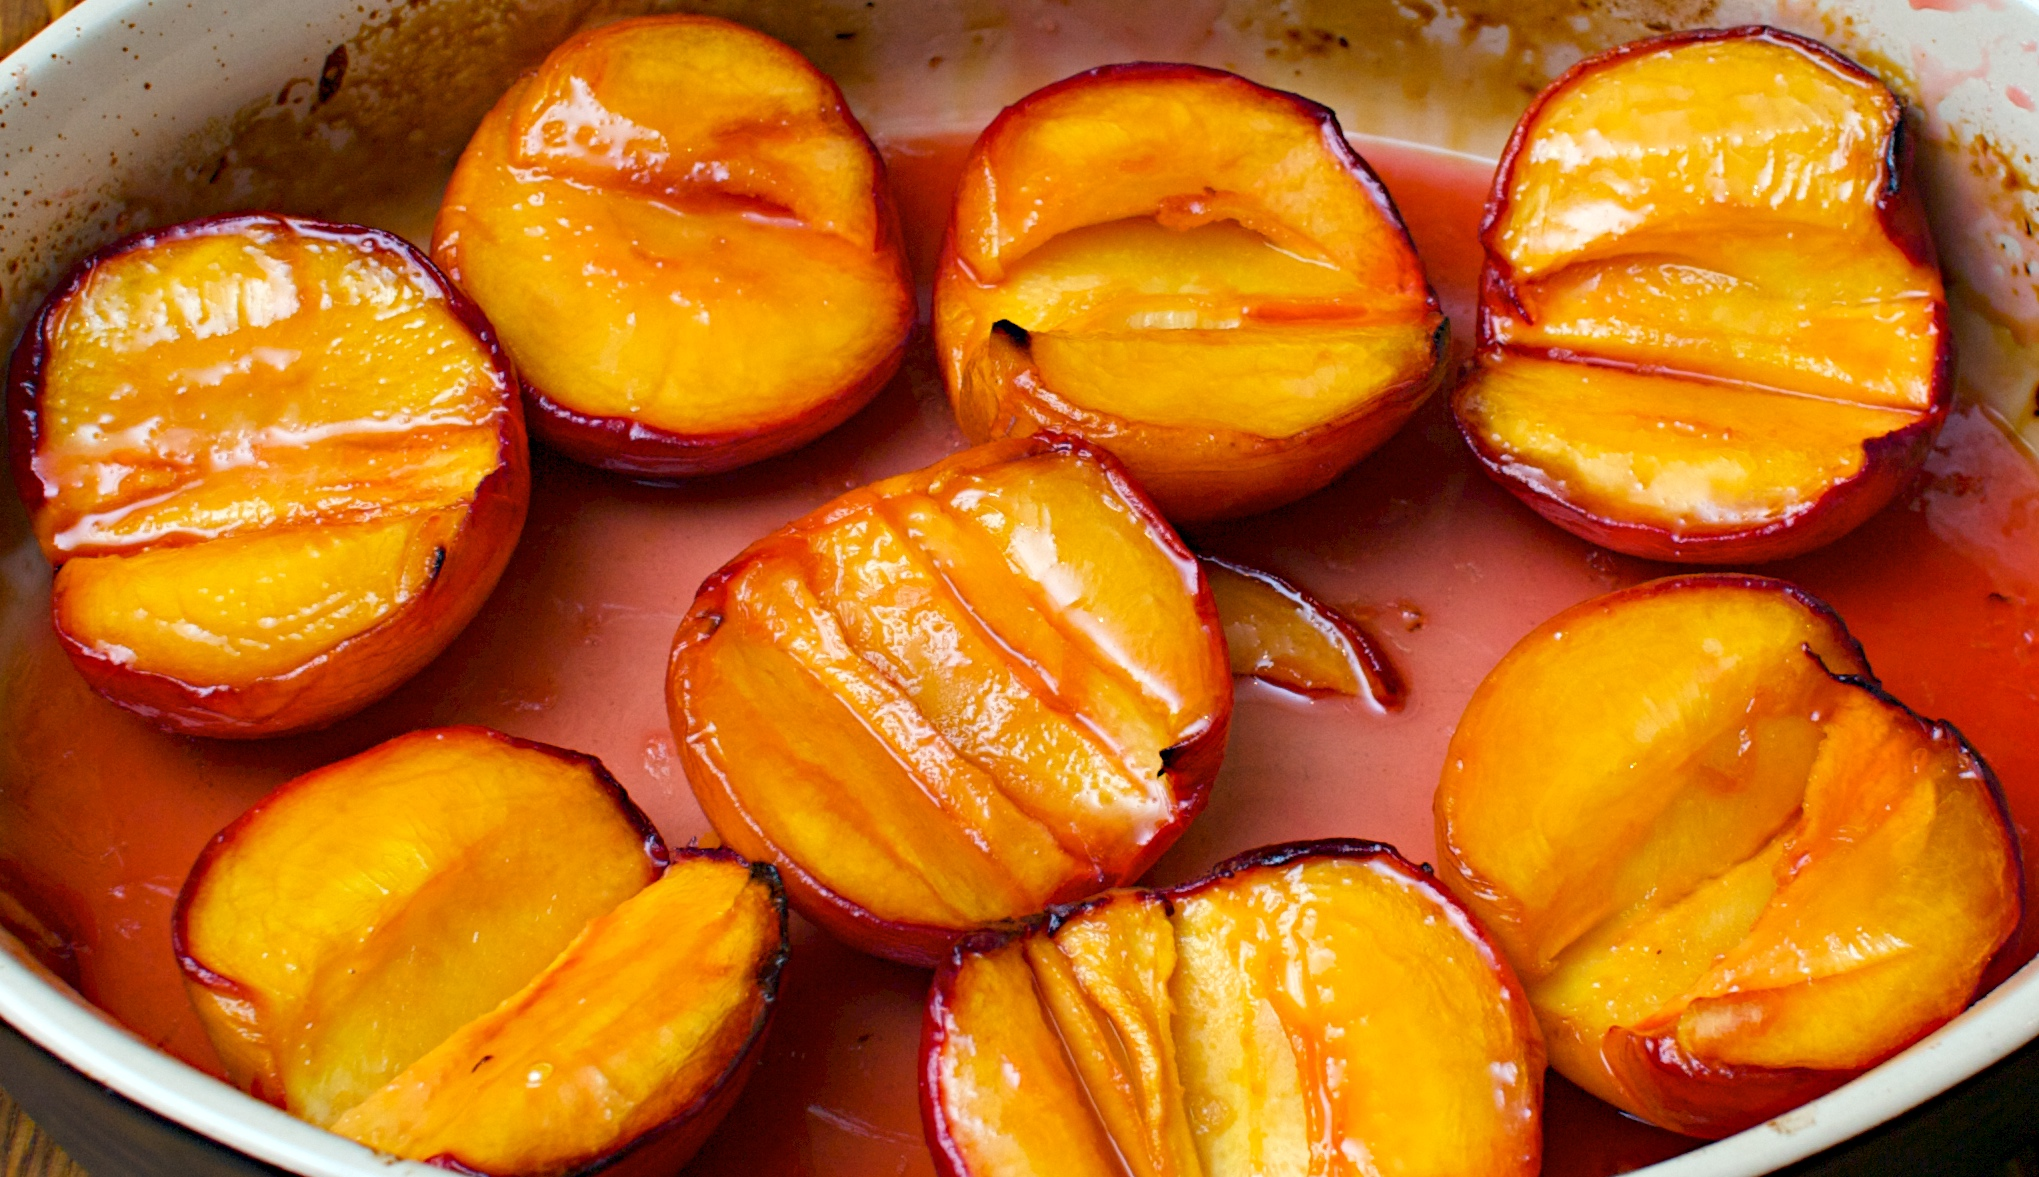 Baked peaches with maple syrup and vanilla – to serve 4